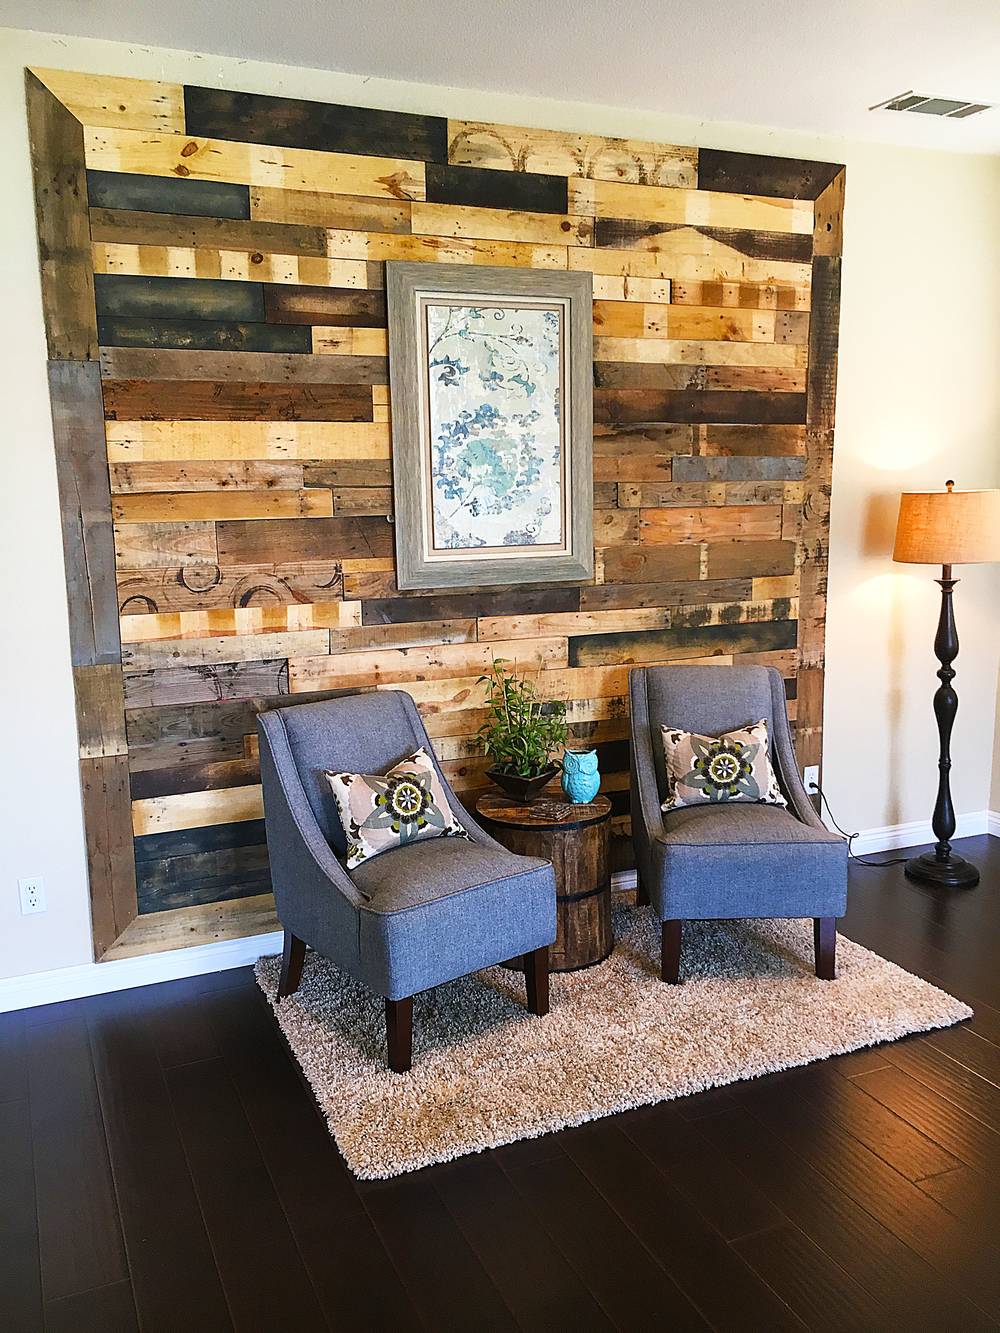 at the pallet wall we appreciate the unique beauty and character found in reclaimed wood - Pallet Wall